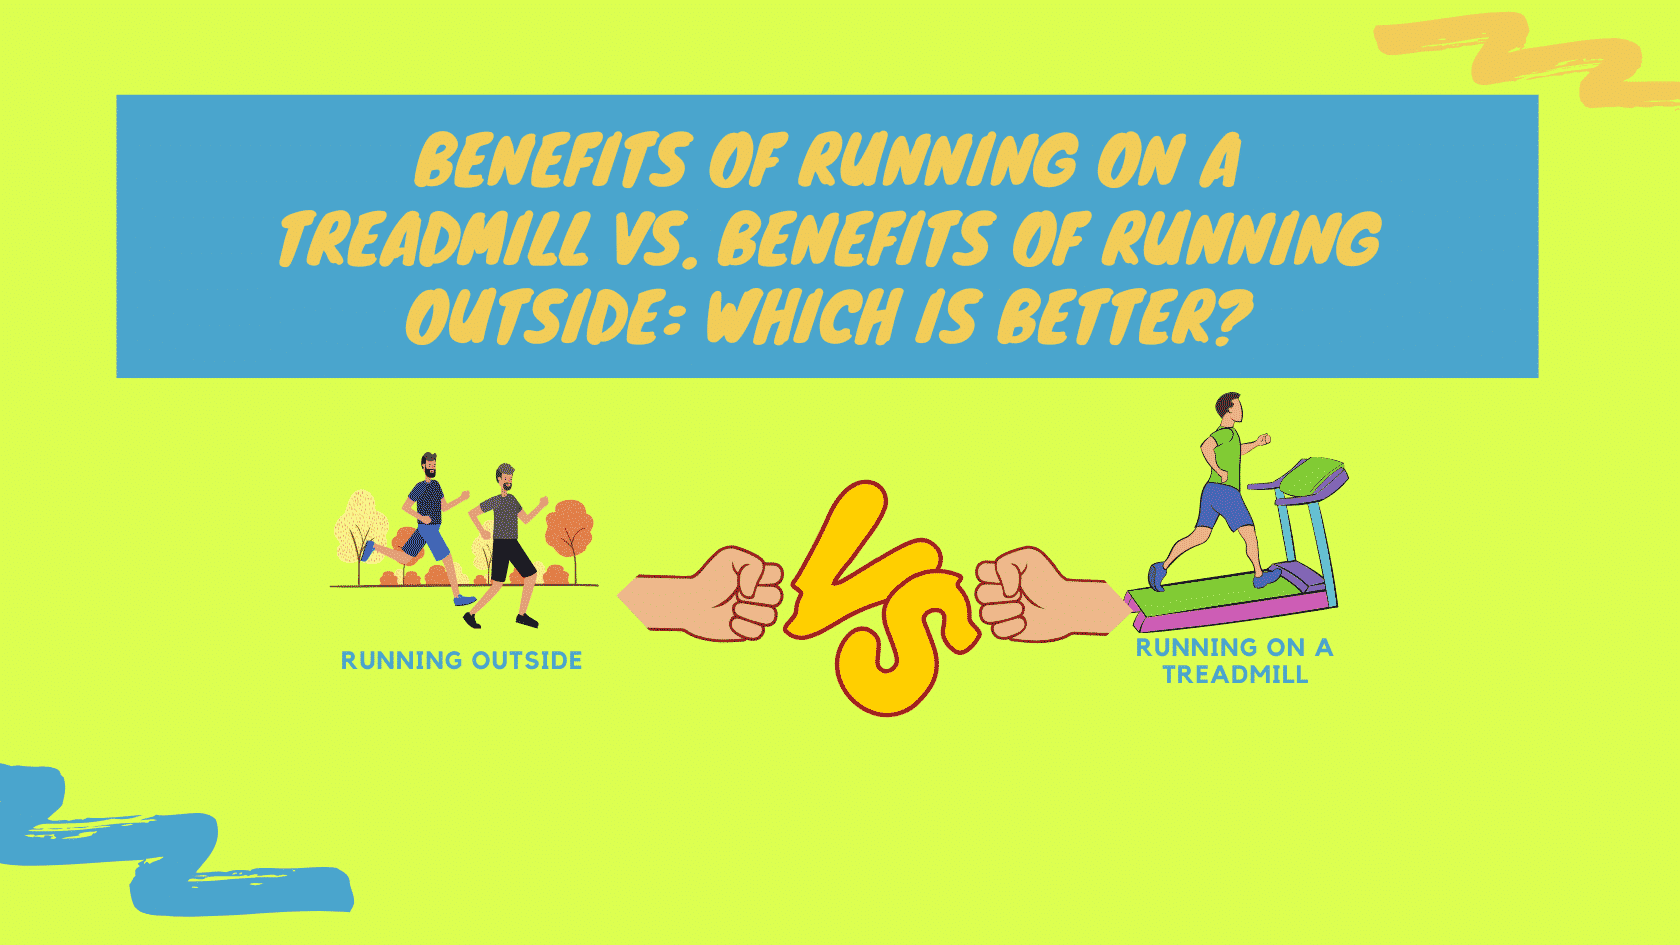 Benefits of Running on a Treadmill vs. Benefits of Running Outside Which is better